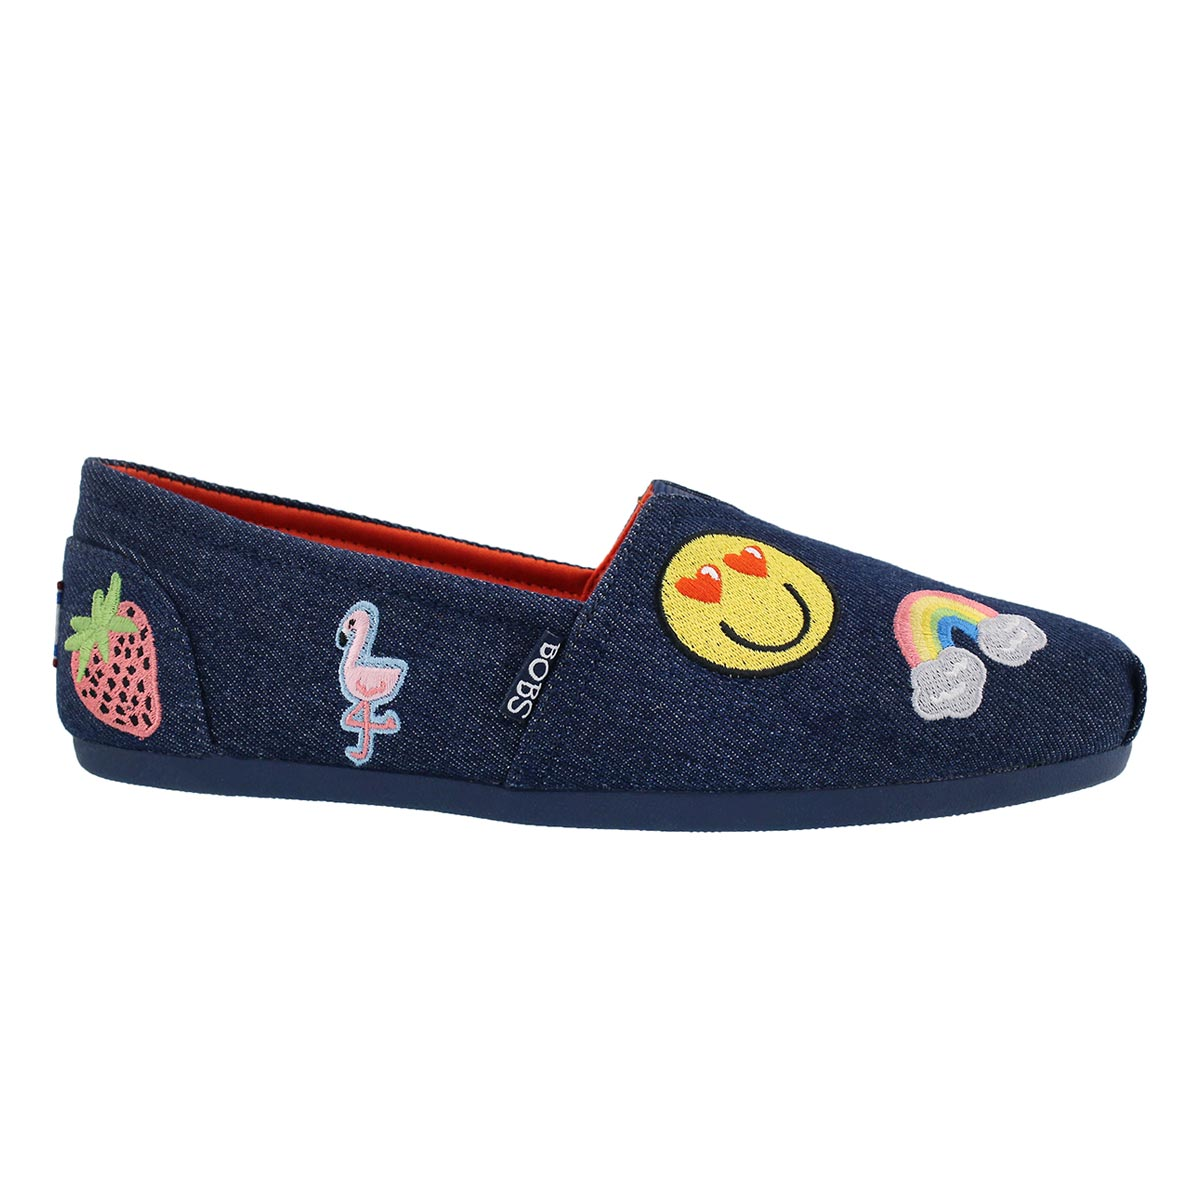 Lds Bobs Plush PerfectPatch denm slip on